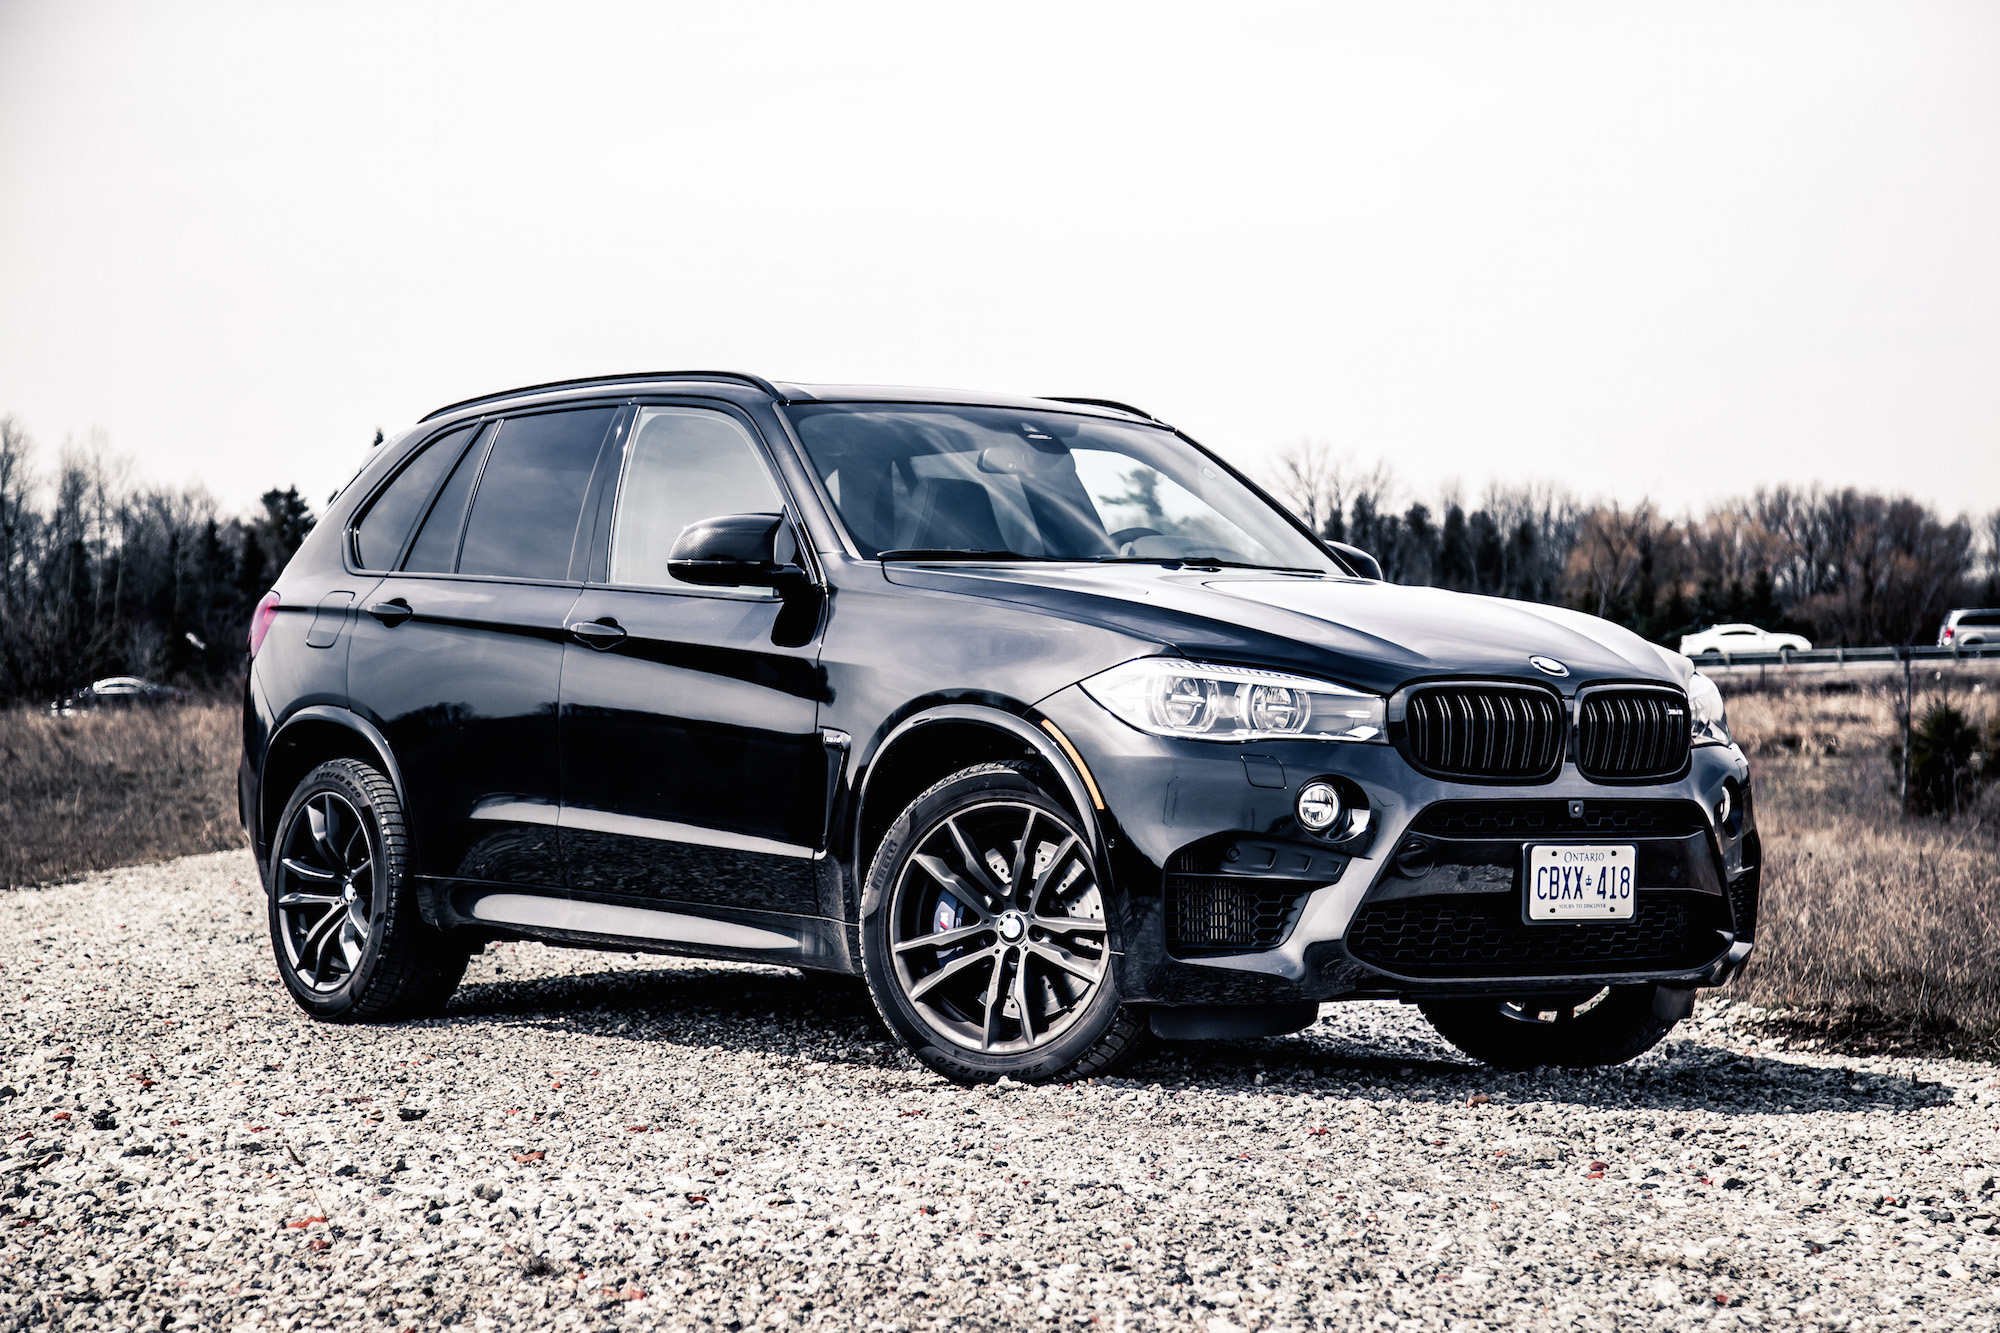 review 2018 bmw x5 m black fire edition car. Black Bedroom Furniture Sets. Home Design Ideas